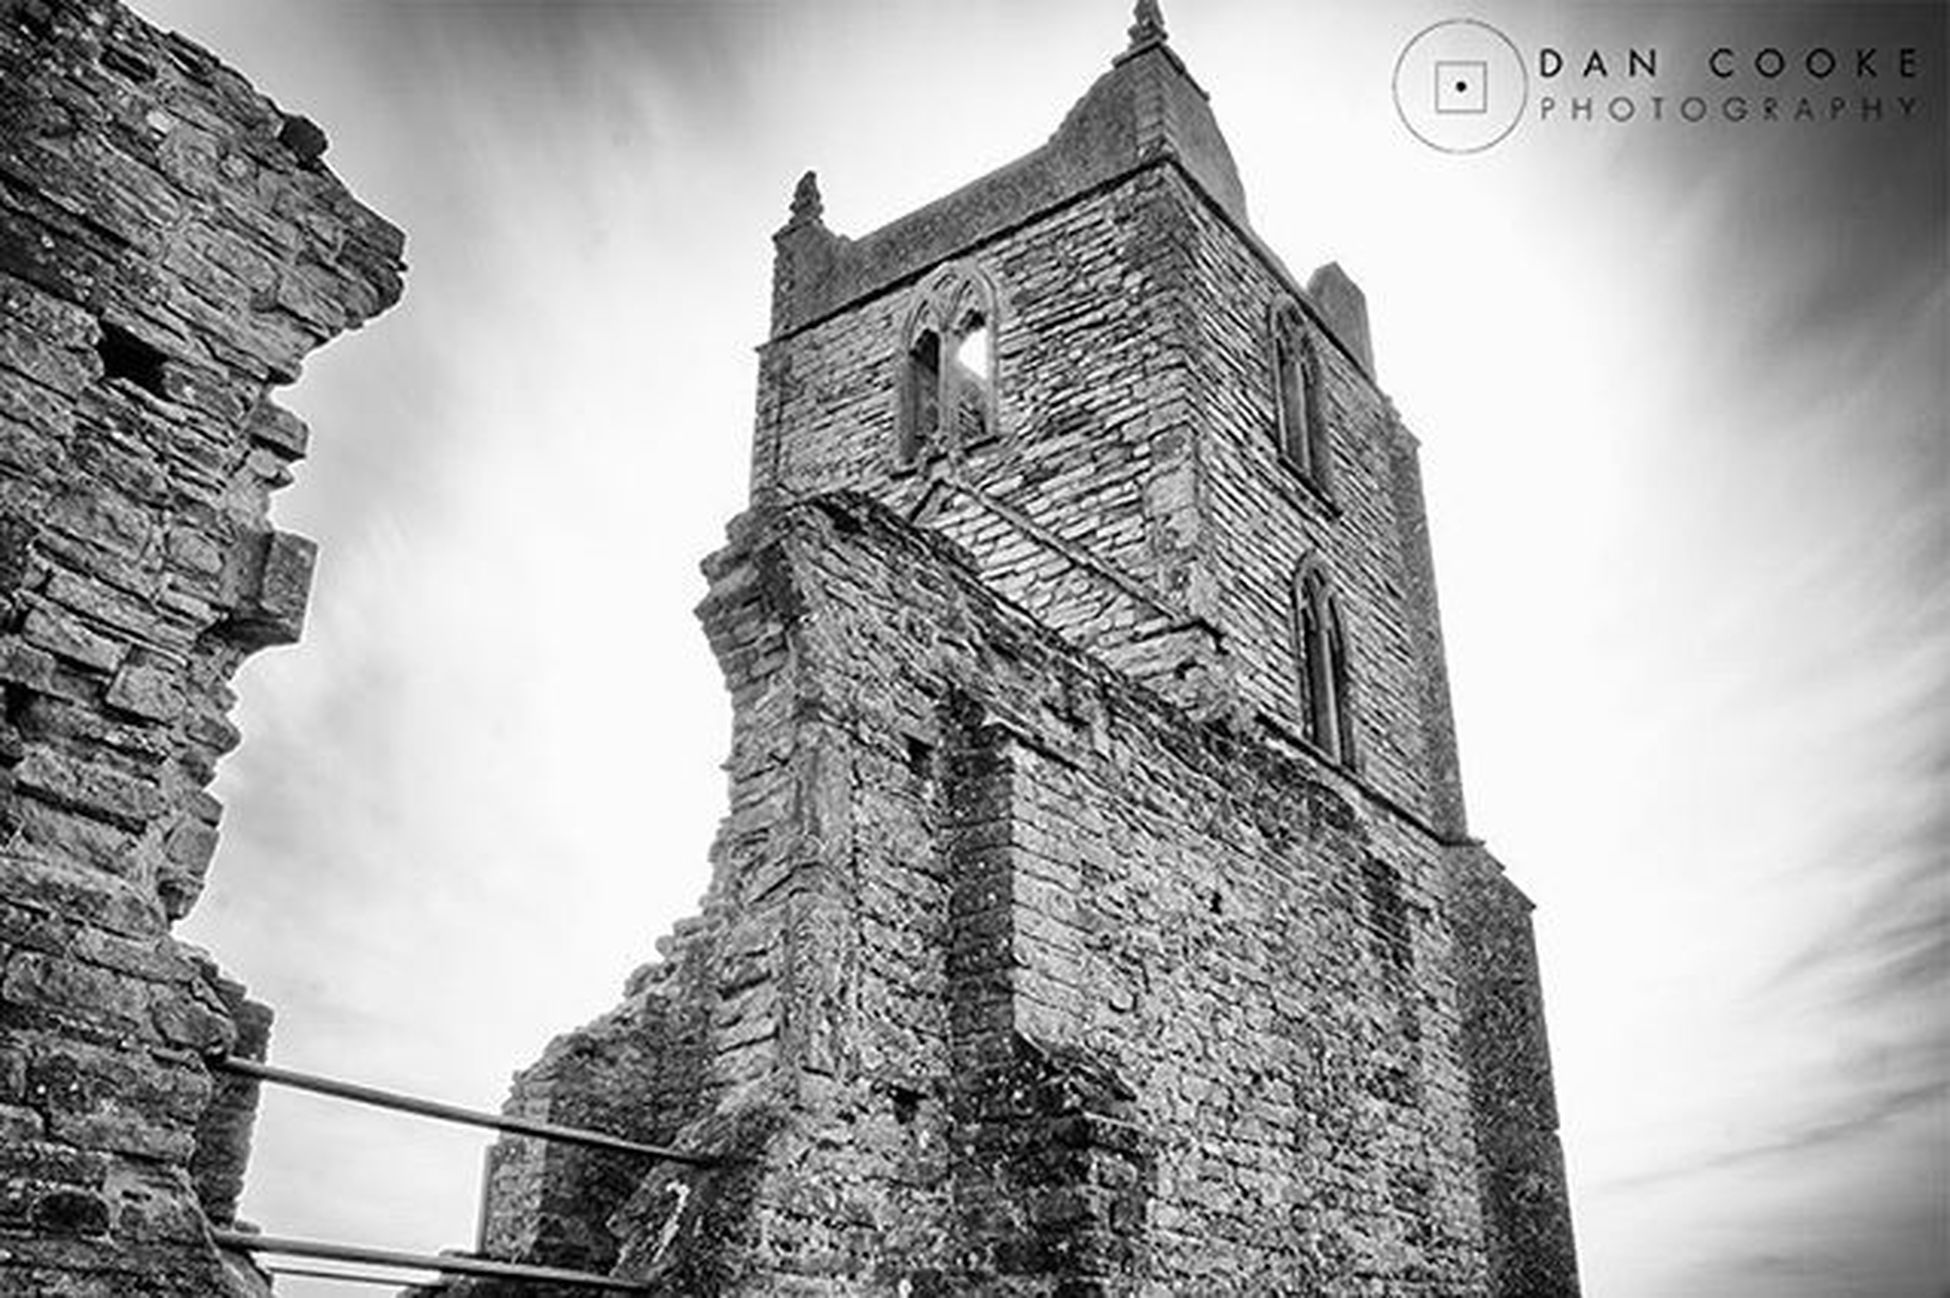 So, thought I'd do some Longexposurephotography at Burrowmump in Burrowbridge this afternoon. I wanted to catch some movement in the clouds above the old church. Longexposure Longexposure_shots Longexpo Amazing_longexpo Weekly_feature Longexposureoftheday Monophotography Monochrome Mono Blacknwhite Englandsbigpicture